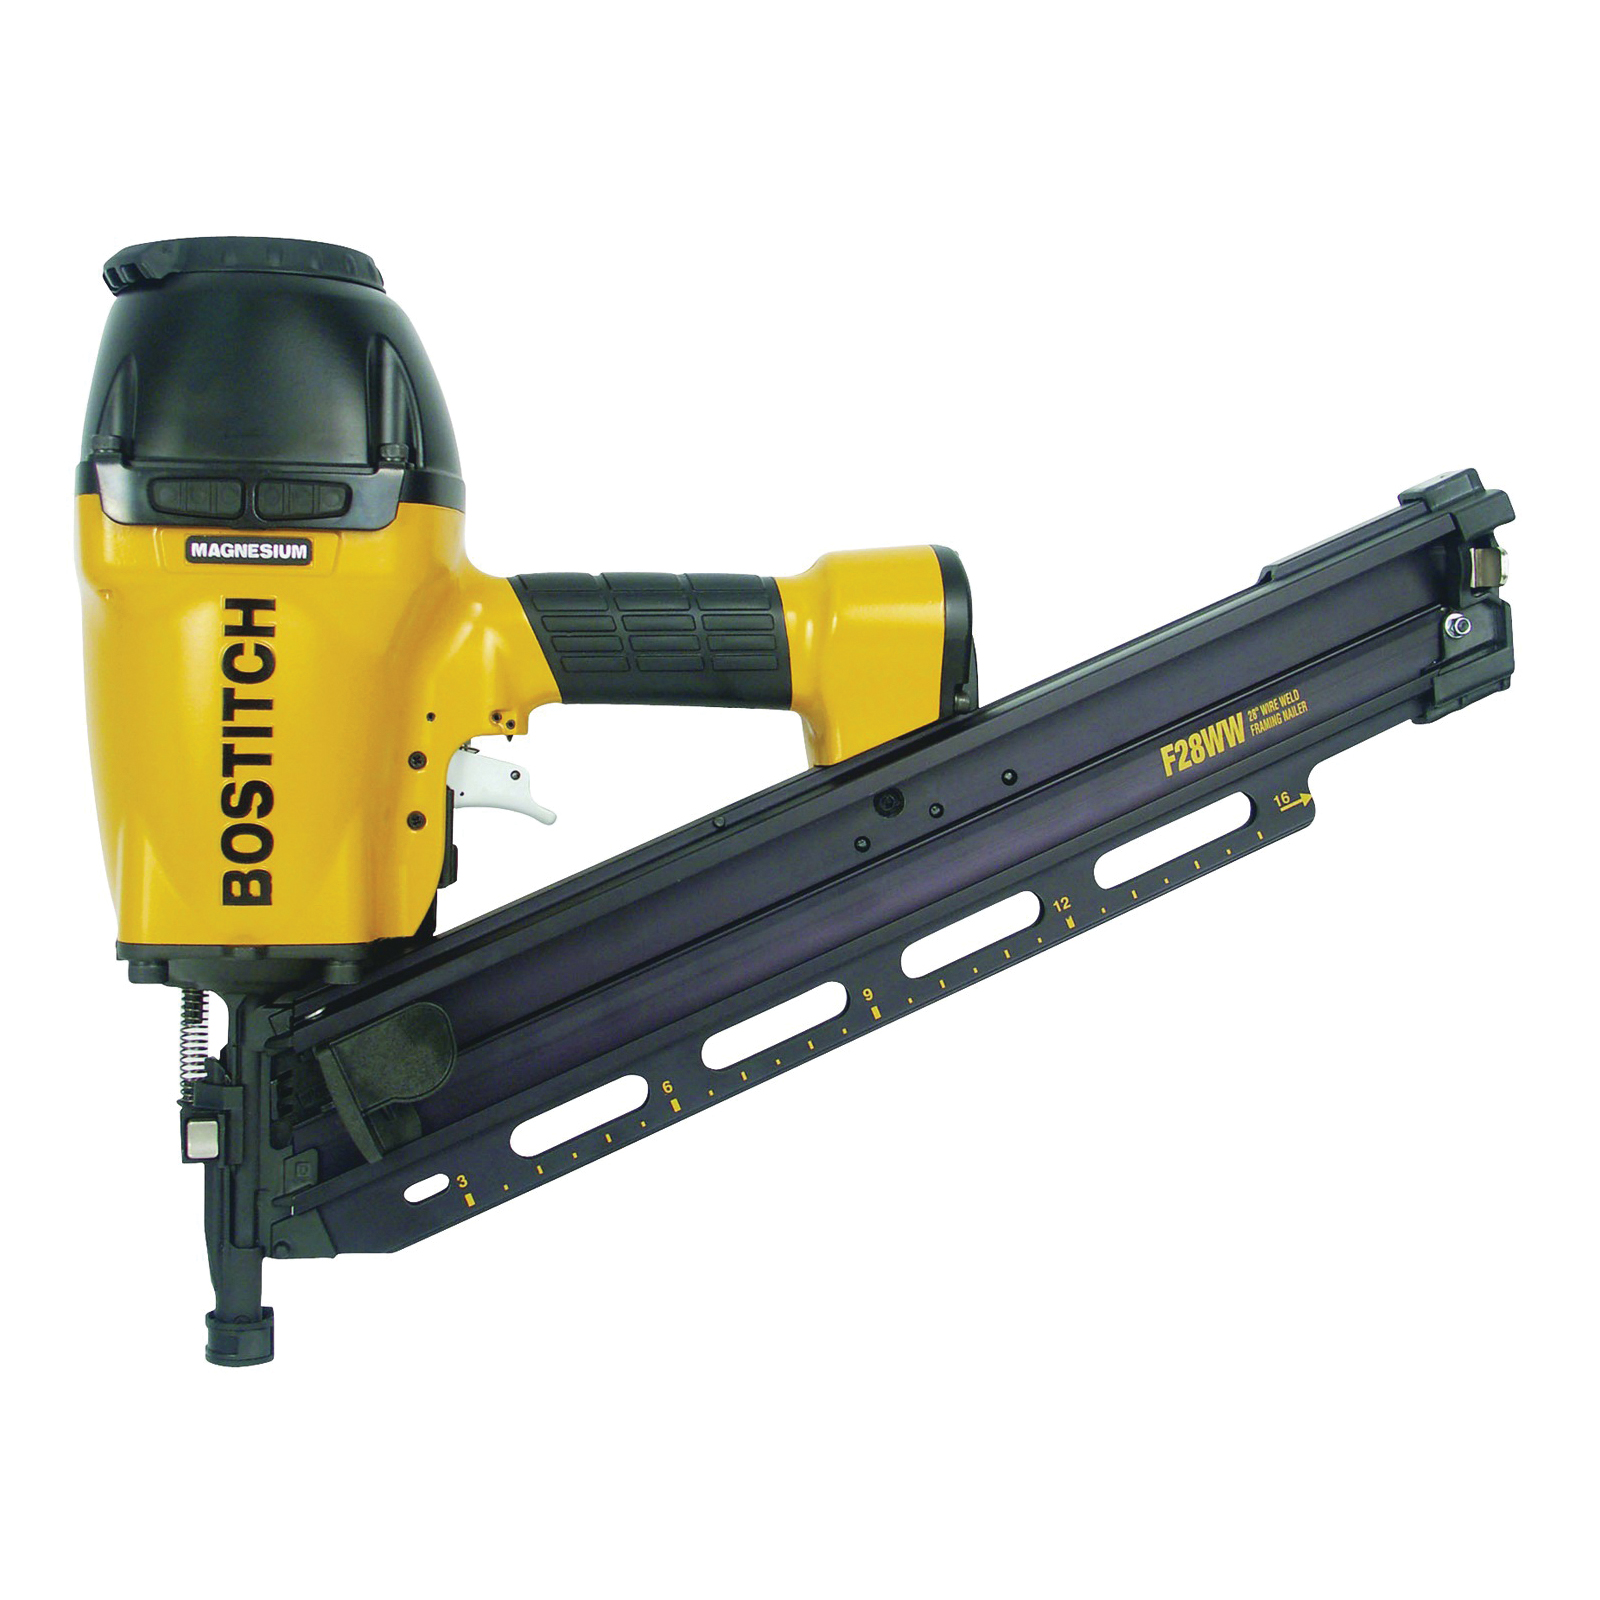 Picture of Bostitch F28WW Framing Nailer, 100 Magazine, 28 deg Collation, Wire Weld Collation, 0.075 cfm/Shot Air